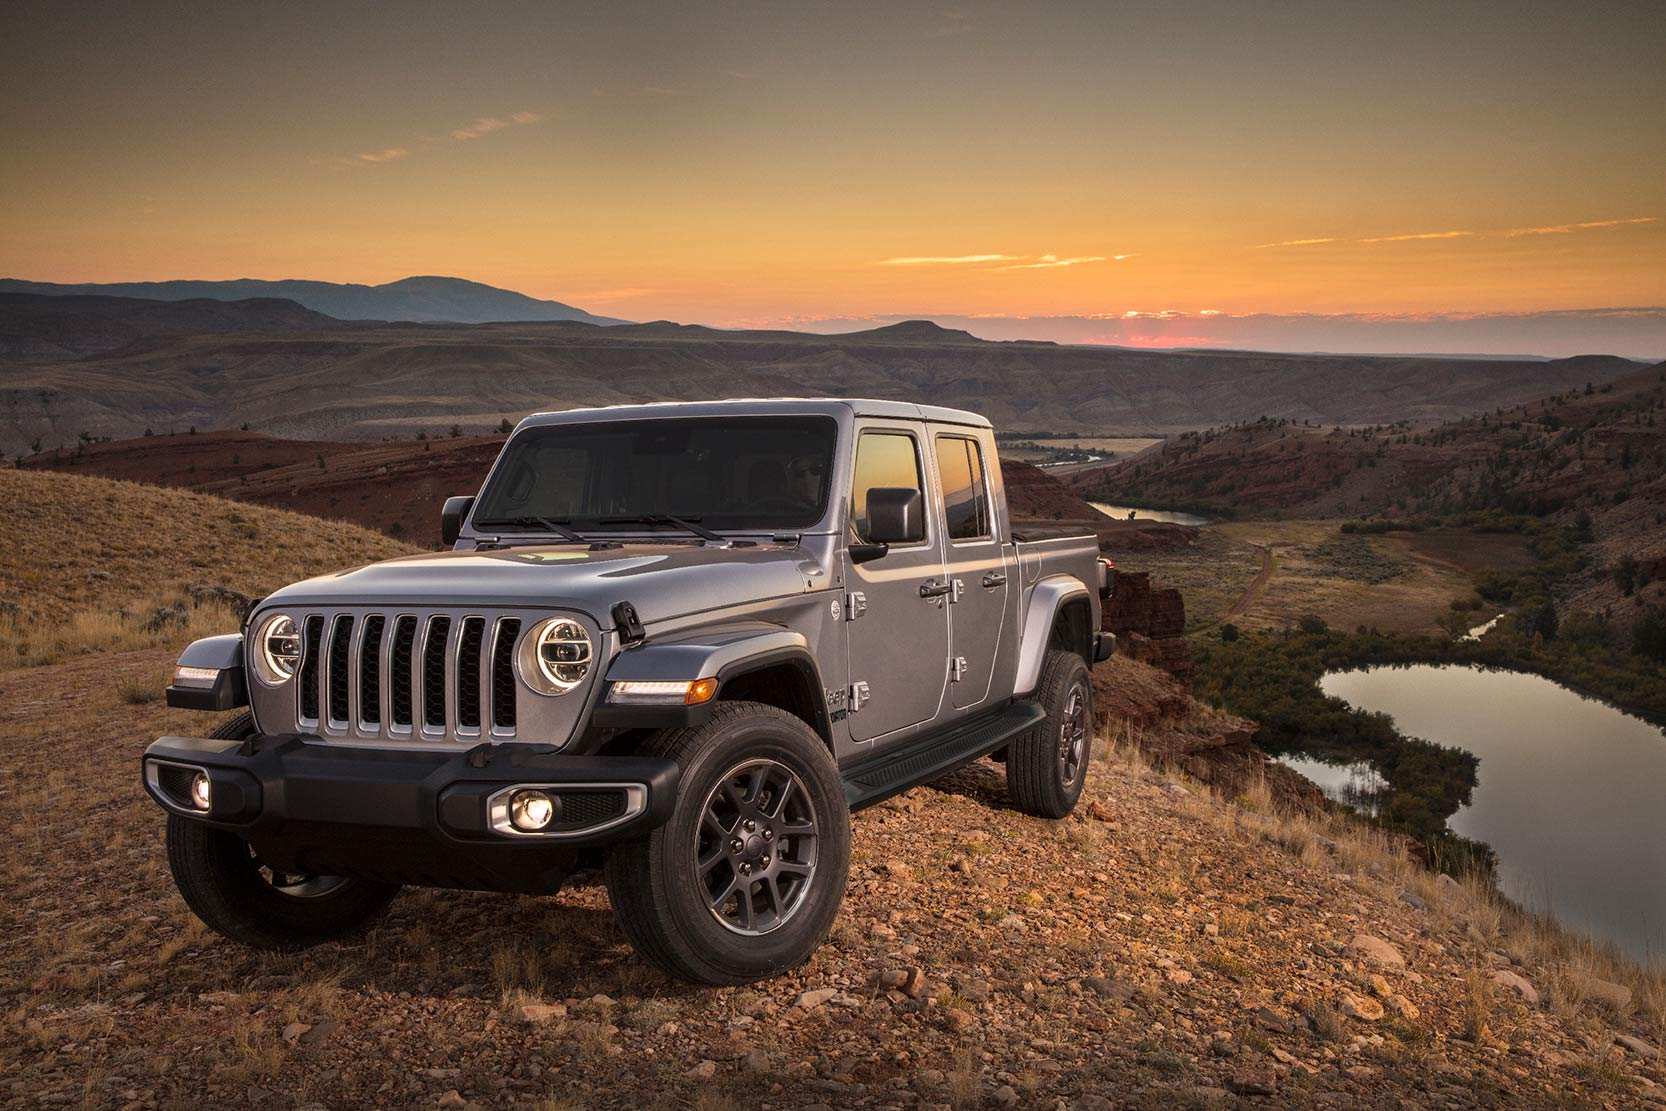 Exterieur_Jeep-Gladiator_119